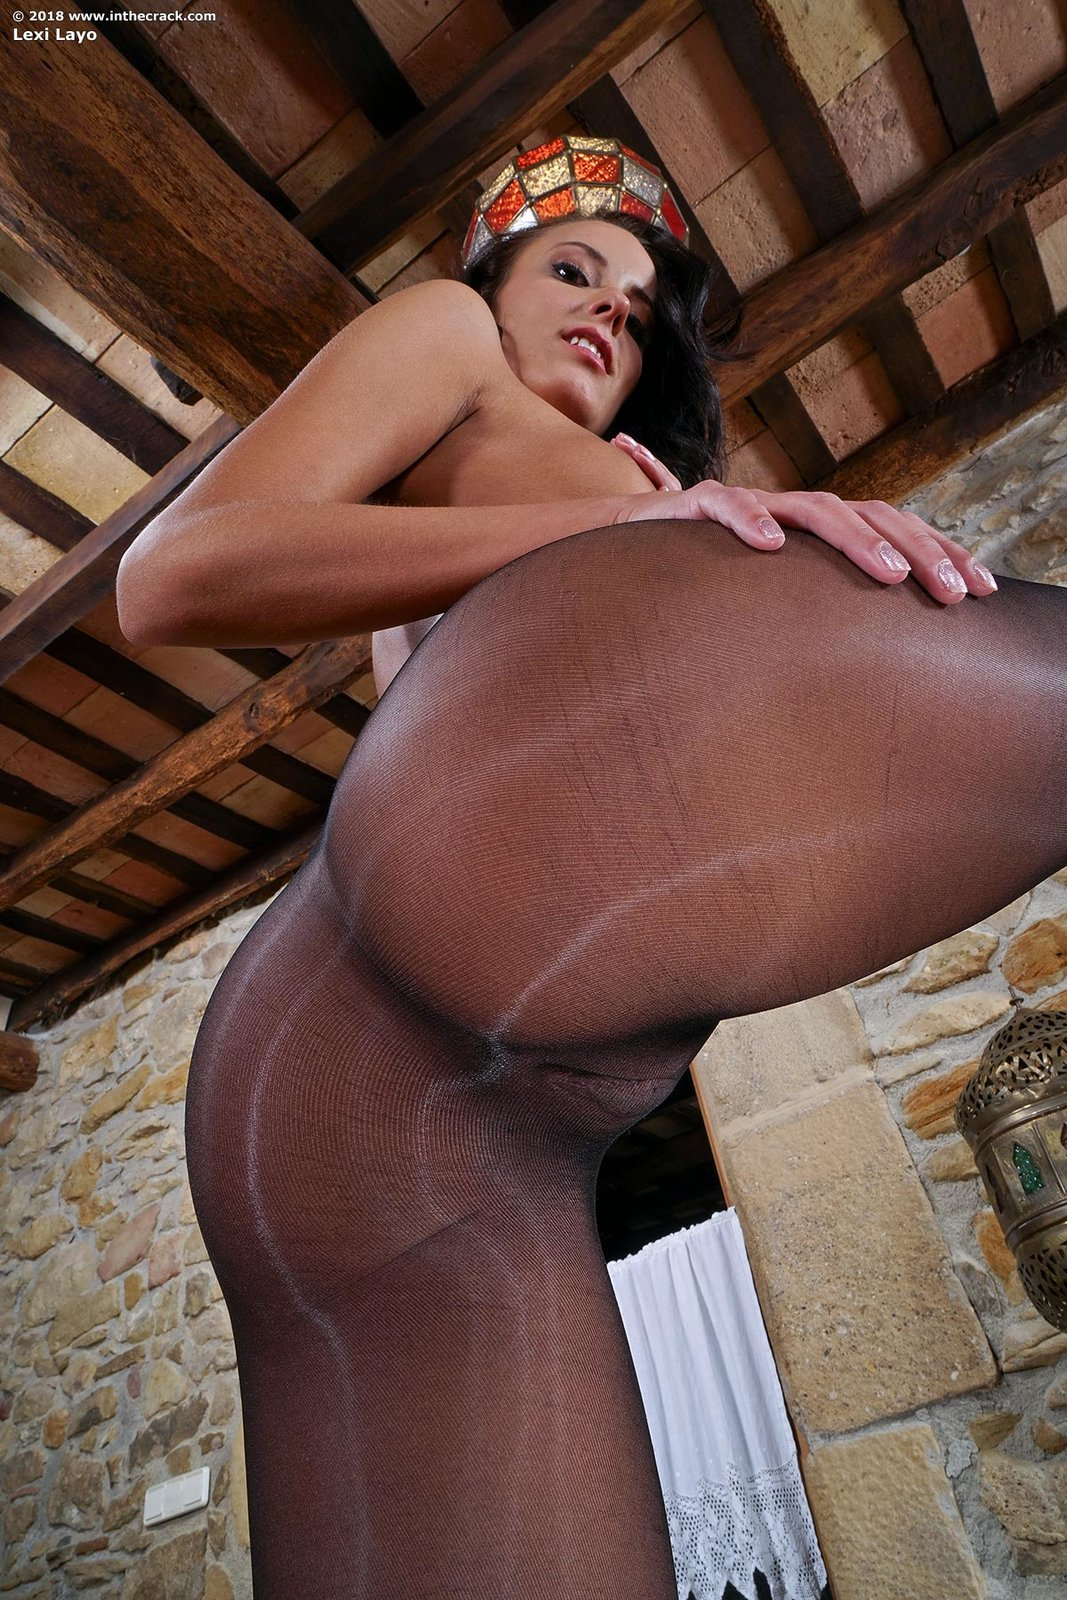 Lexi Layo In Pantyhose Toying By In The Crack 15 Photos -6958